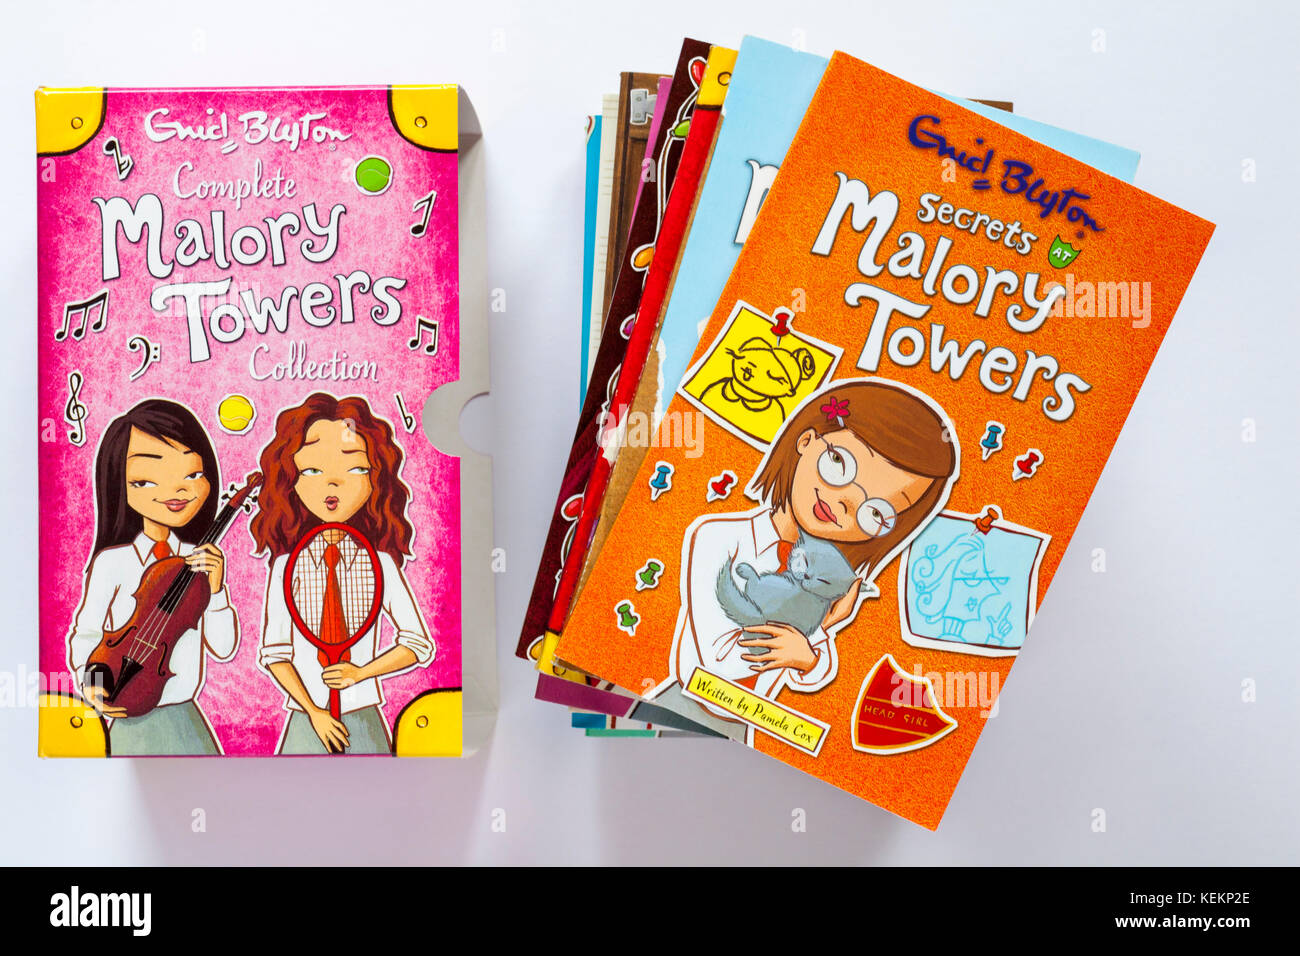 Complete Malory Towers Collection books by Enid Blyton - books piled with Secrets of Malory Towers book on top isolated - Stock Image